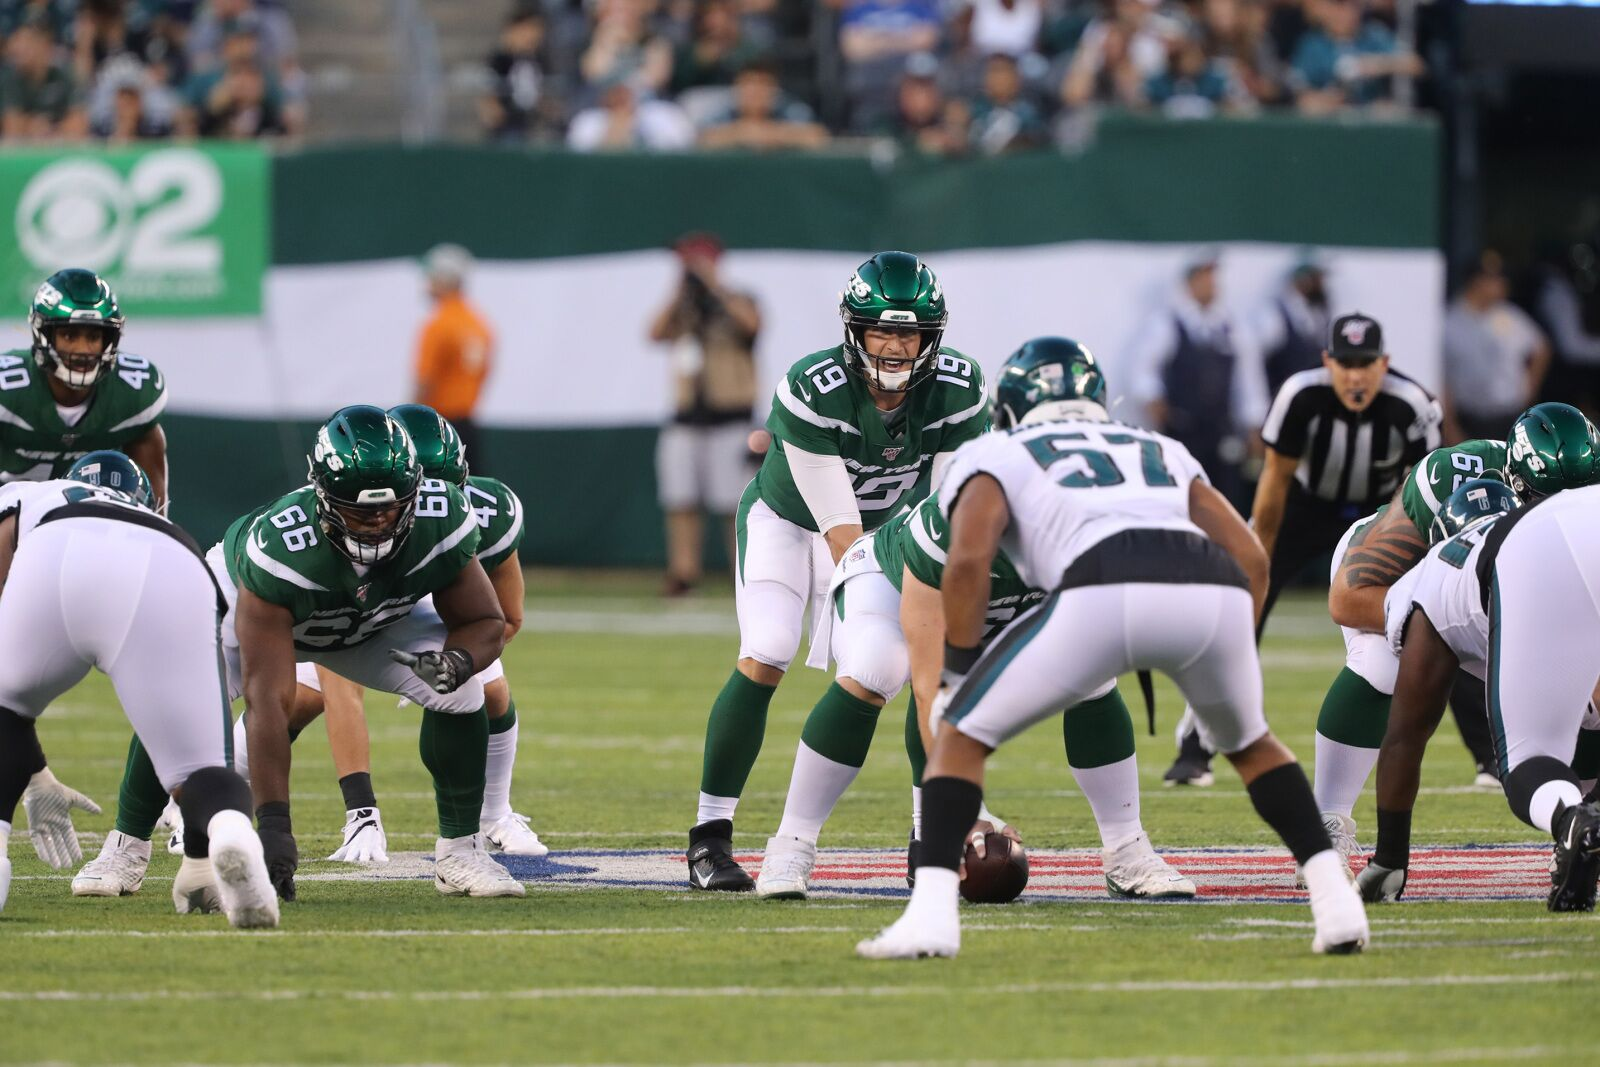 Jets lose another QB after Trevor Siemian gets crushed